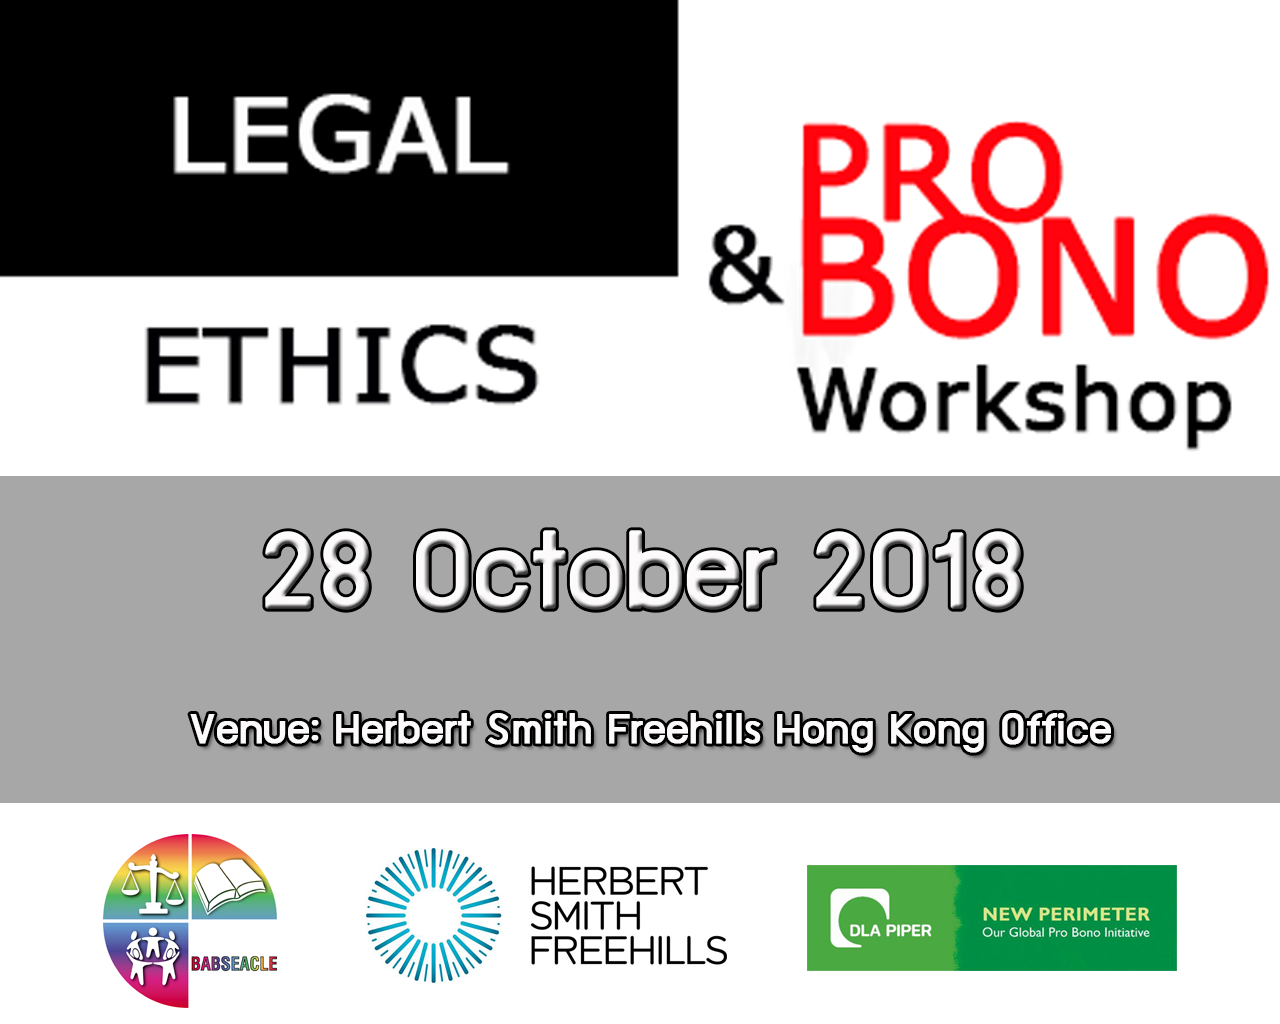 Legal Ethics as a core part in regional events